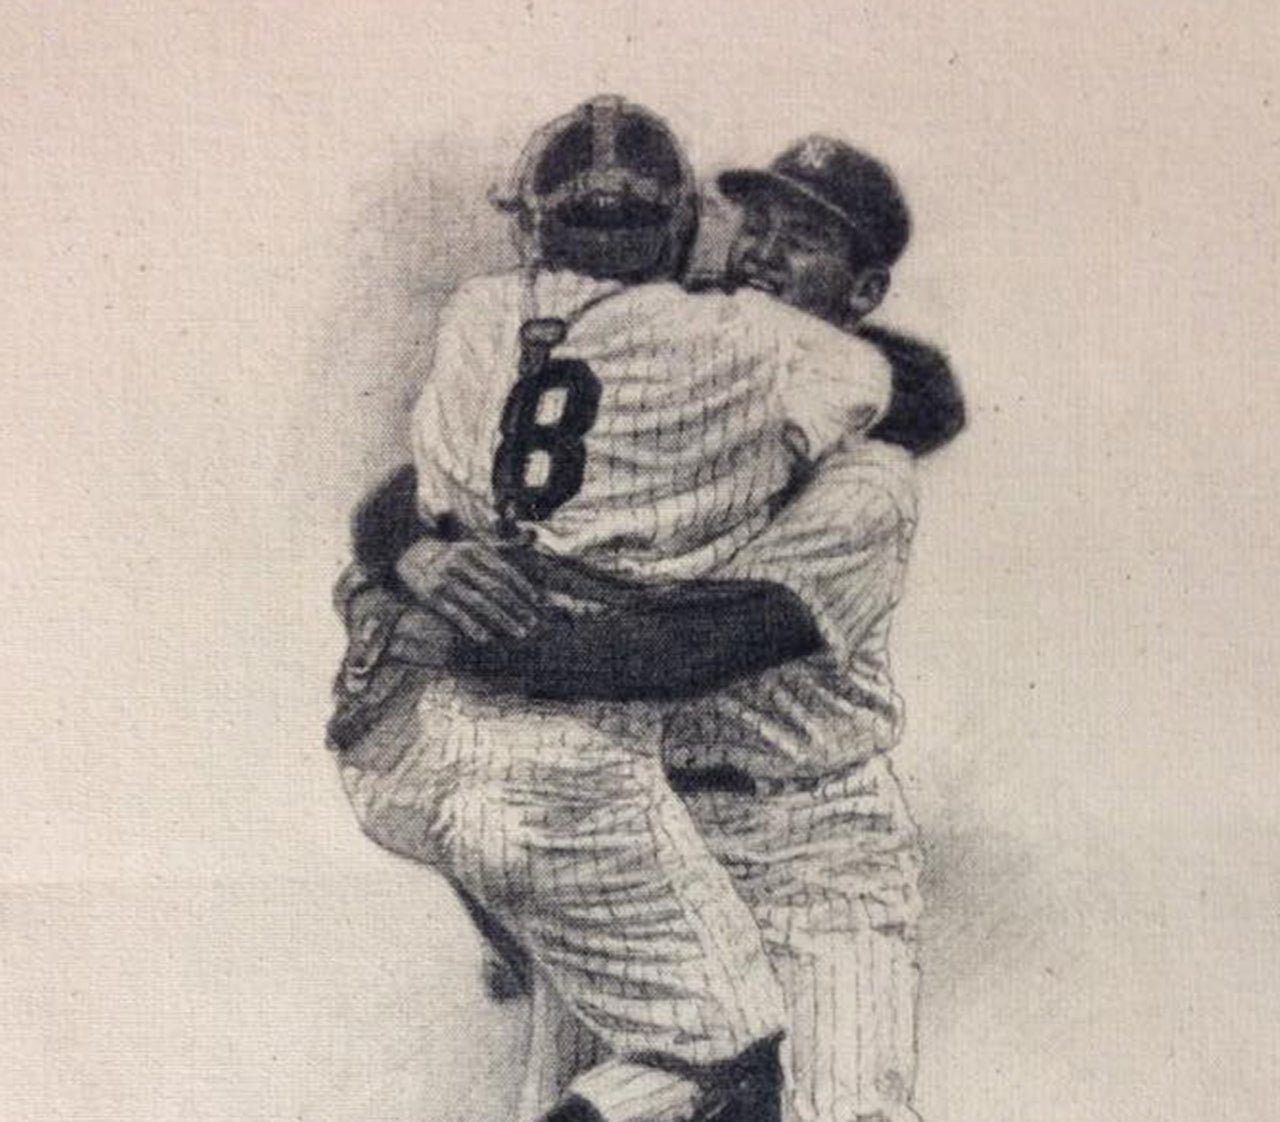 Don Larsen/Yogi Berra Perfect Game - Graphite on Raw Canvas 11x14